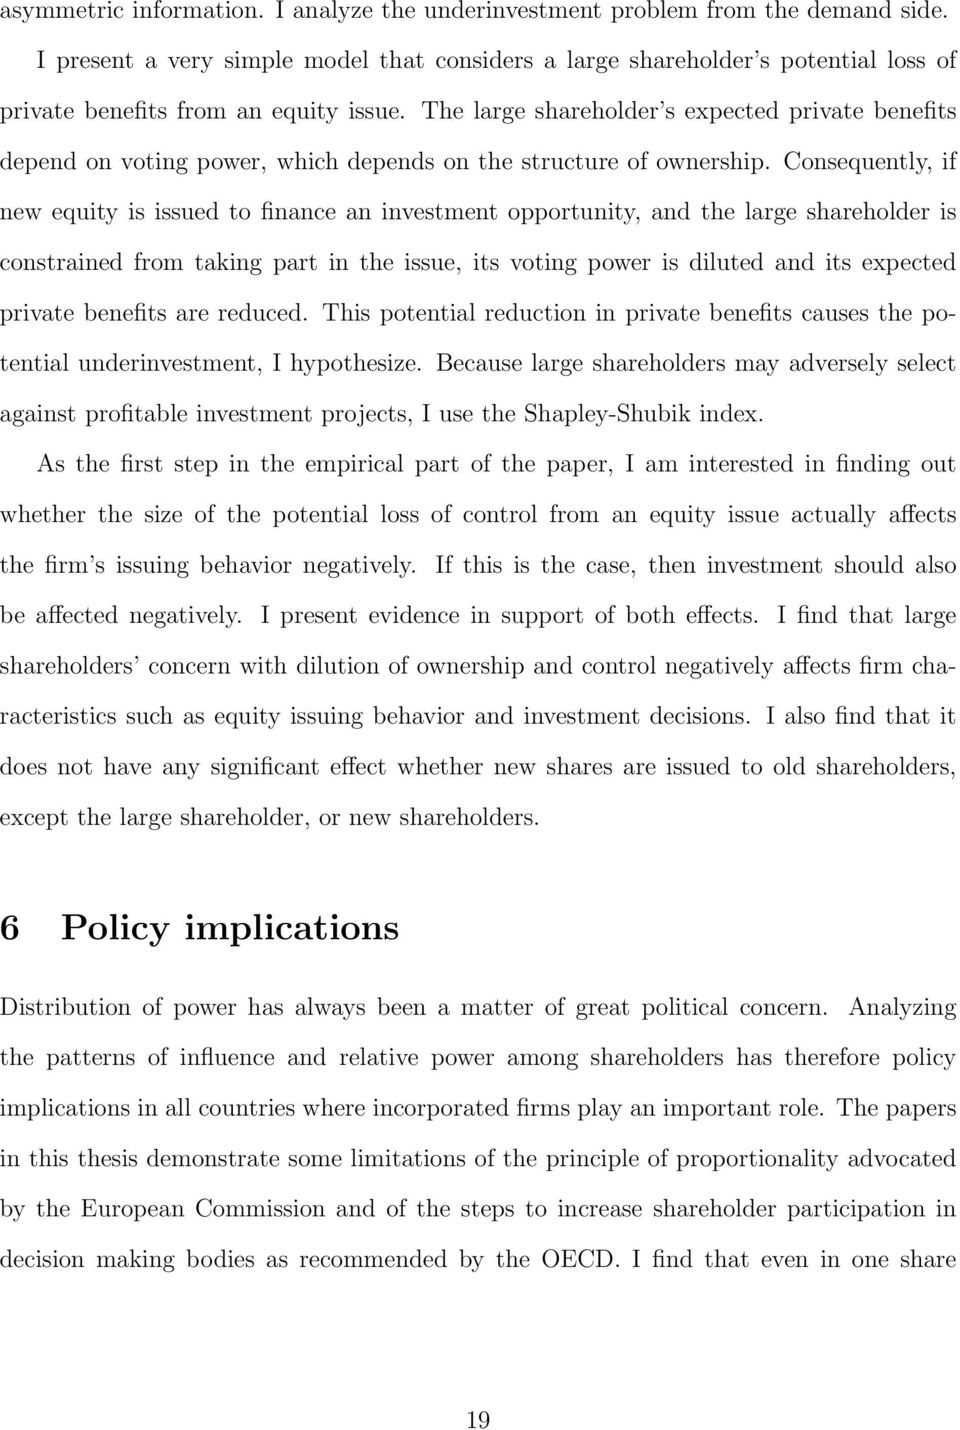 essay on political implication of power